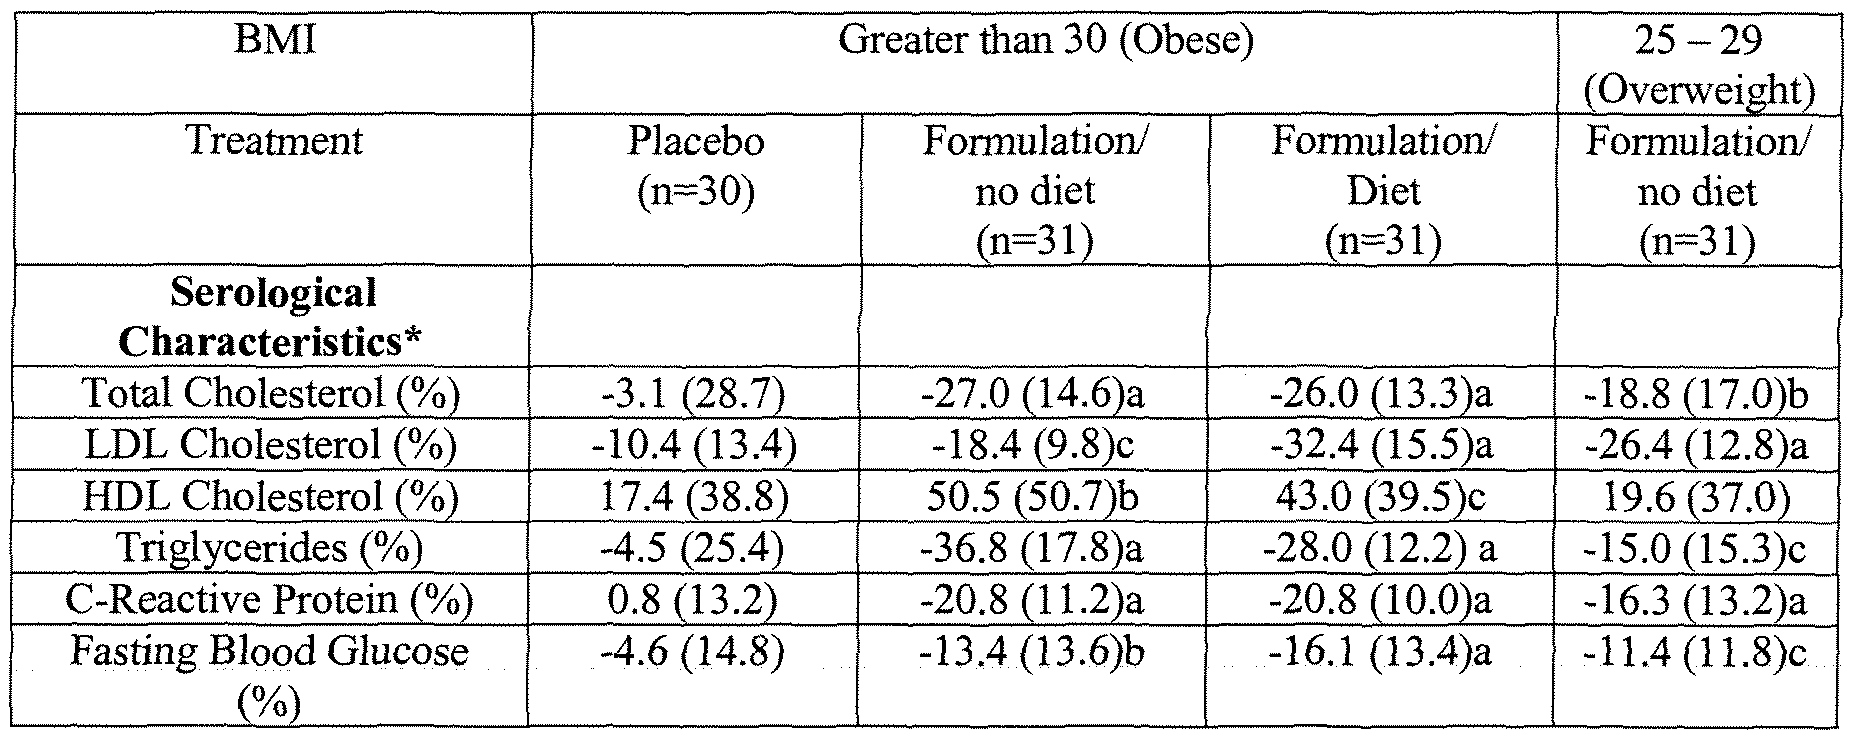 What are the explanations of LDL/HDL ratios?